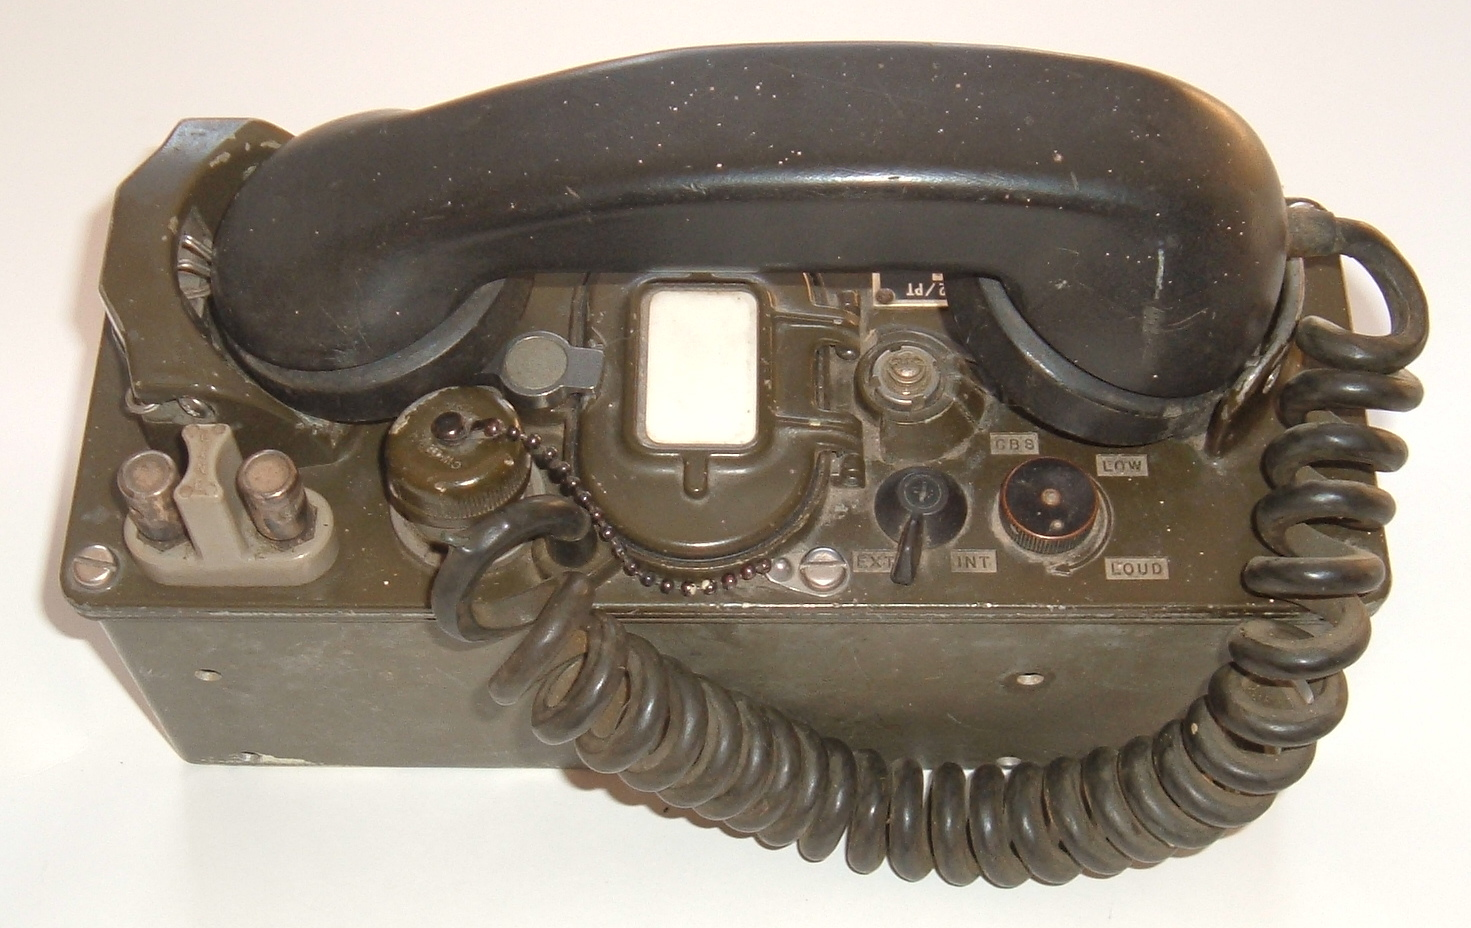 -312fieldtelephone